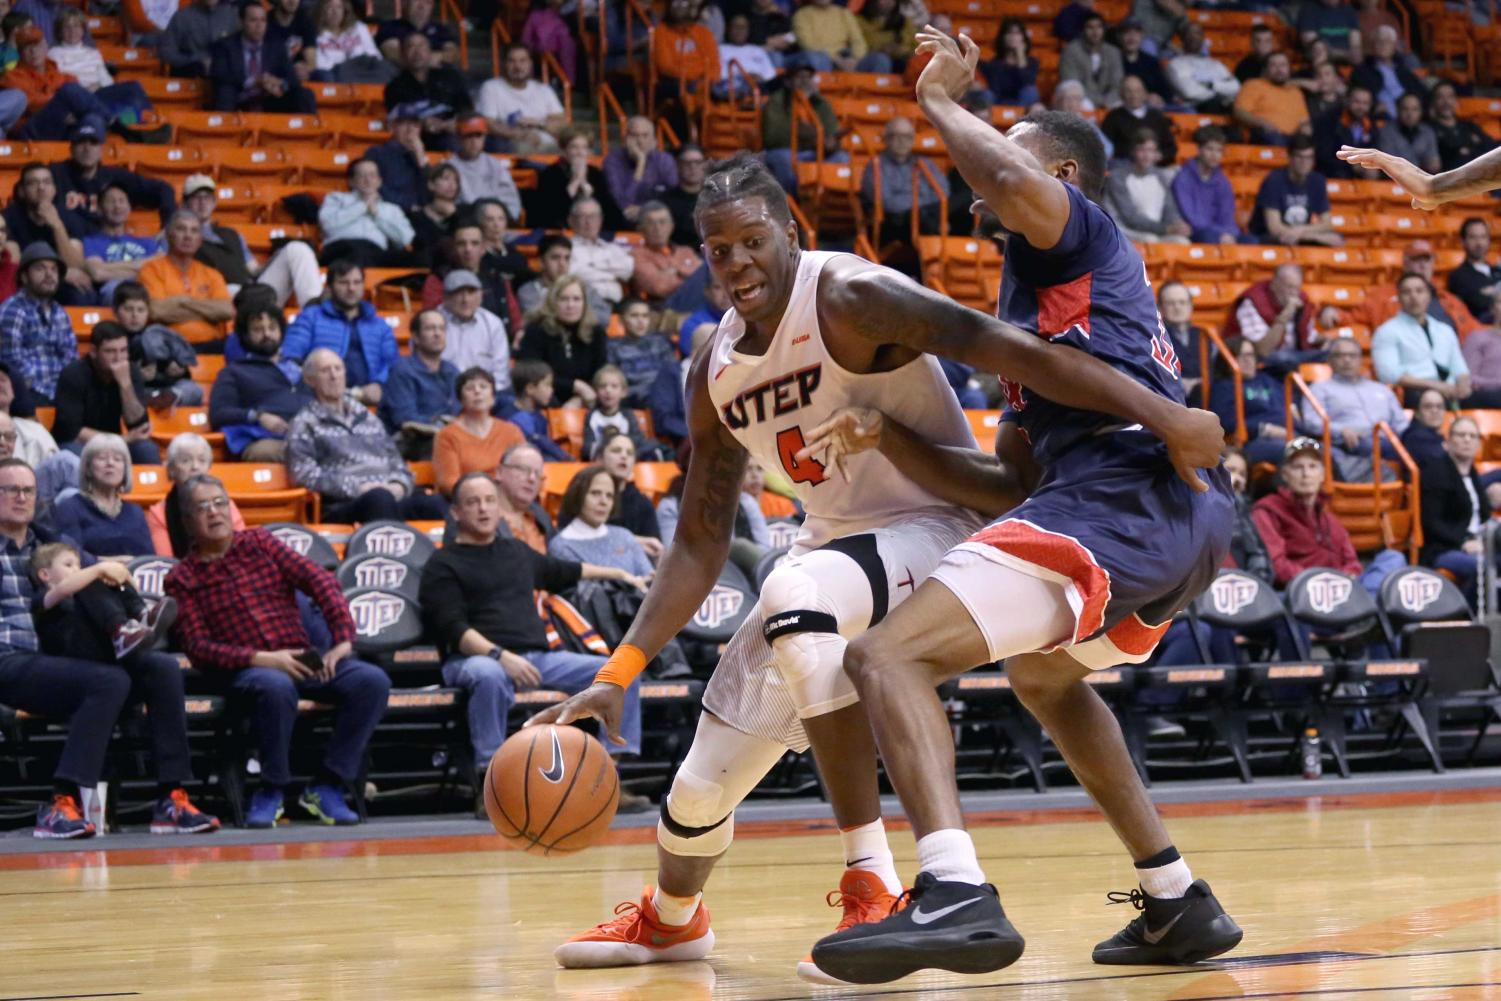 Tirus Smith utilizes his footwork to get away from a Howard defender for two points.